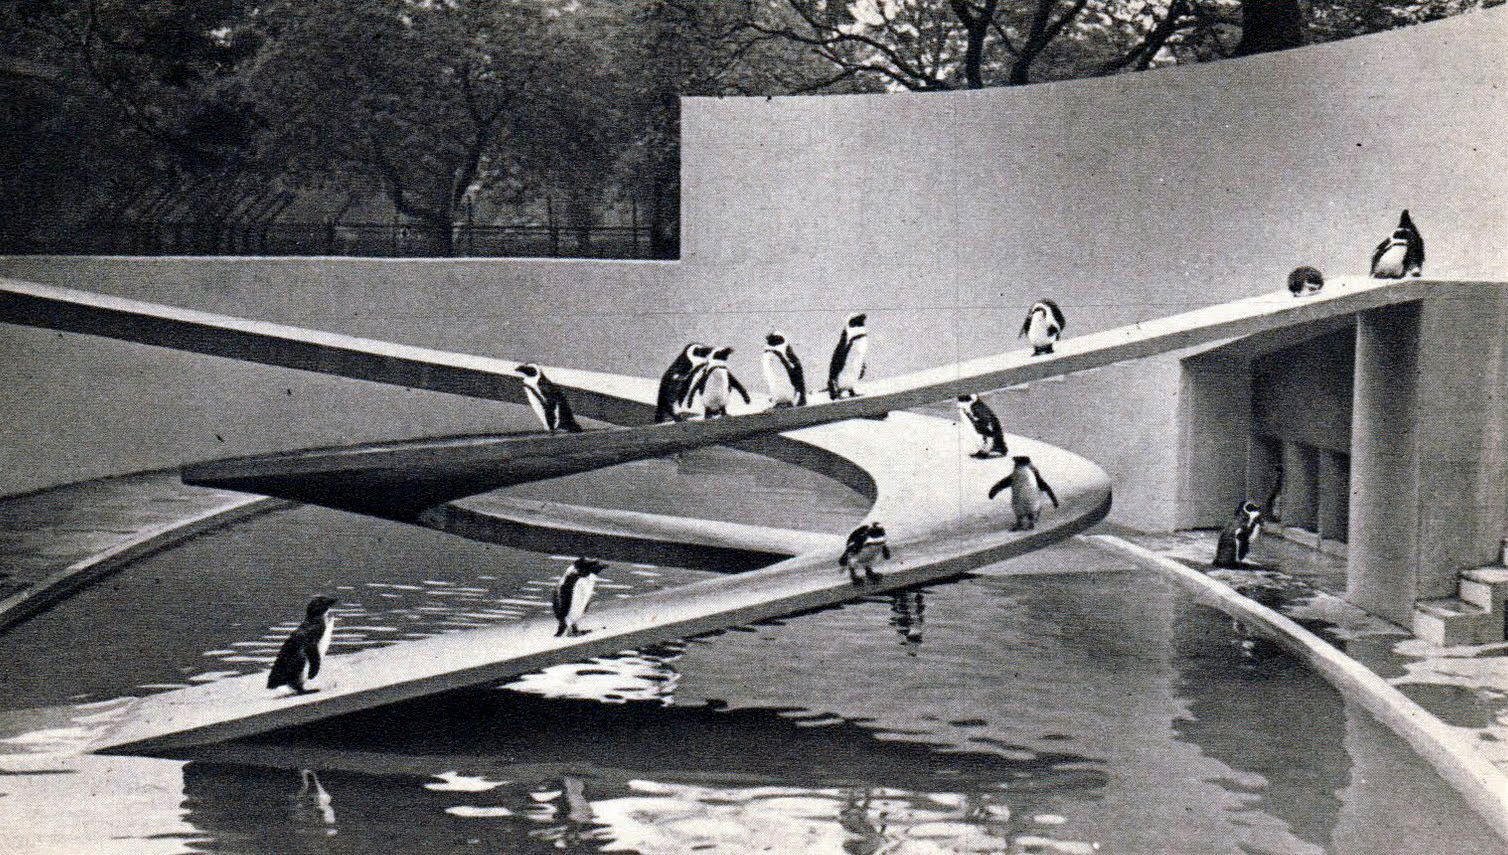 Berthold Lubetkin and Tecton's penguin enclosure, London Zoo, 1934. Photo: themodernist.co.uk.